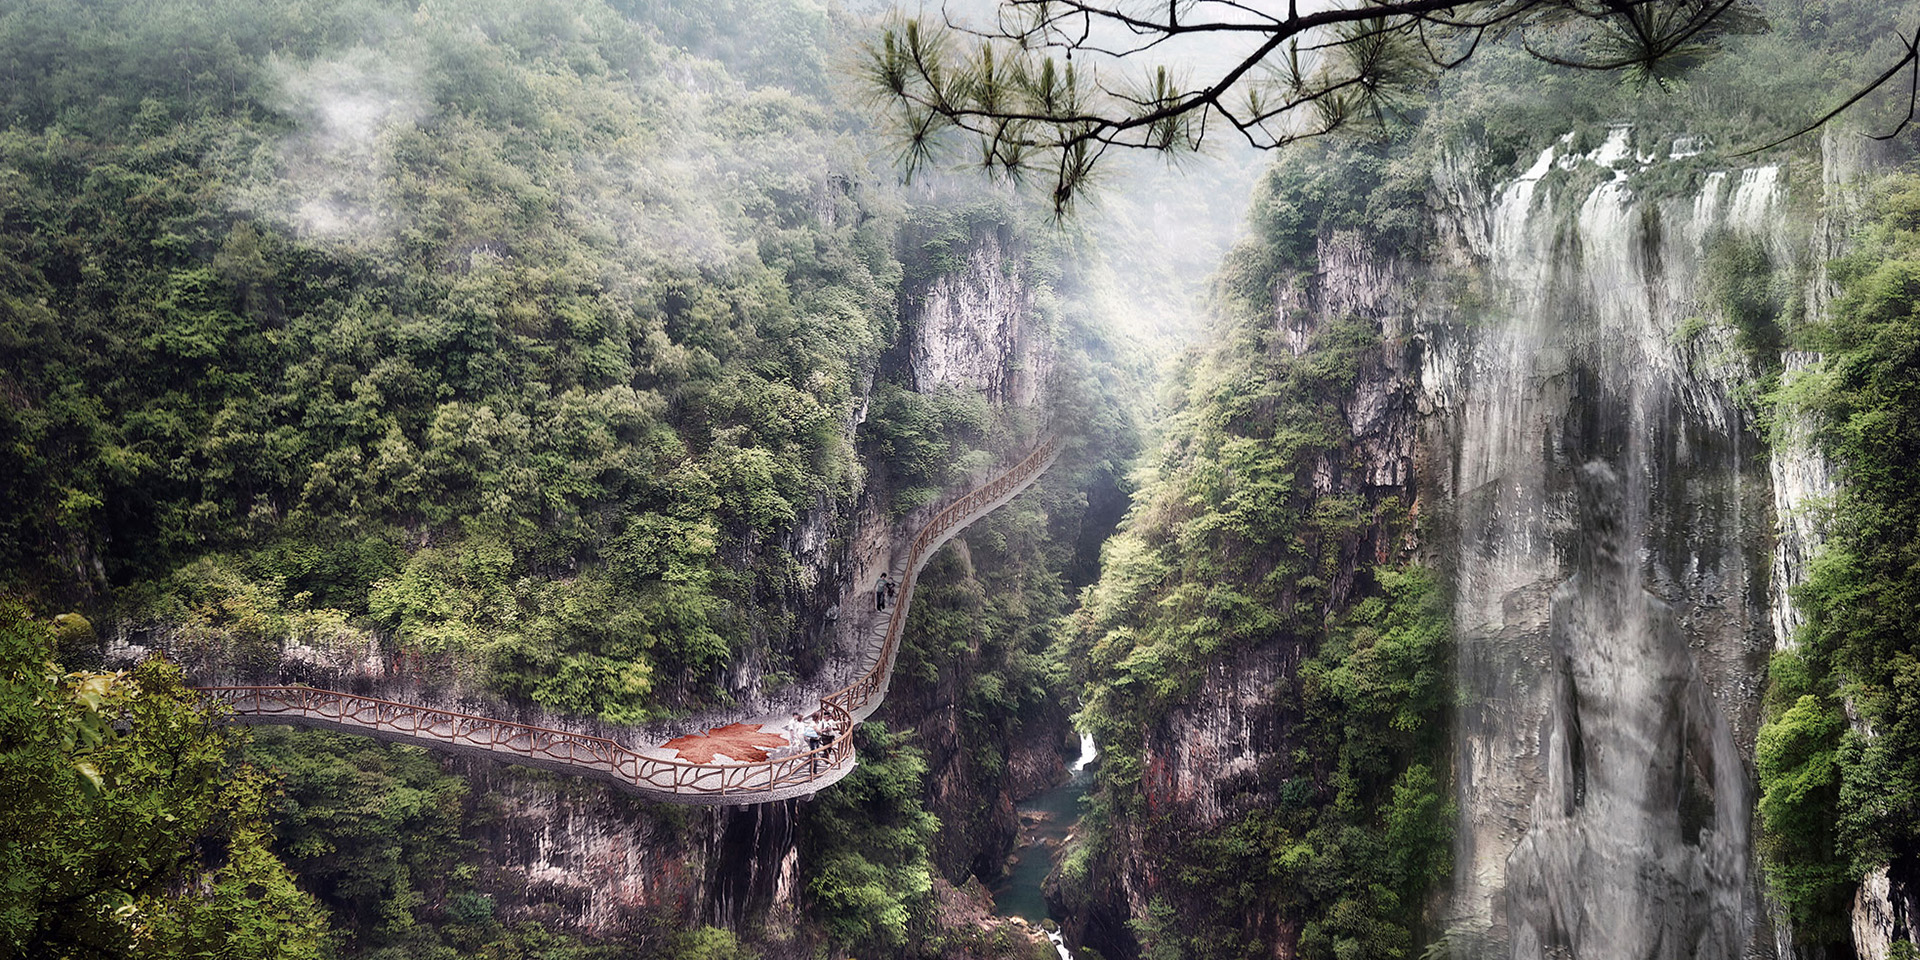 Huahuan Ancient Miaohe River Canyon Tourism Scenic Spot Design